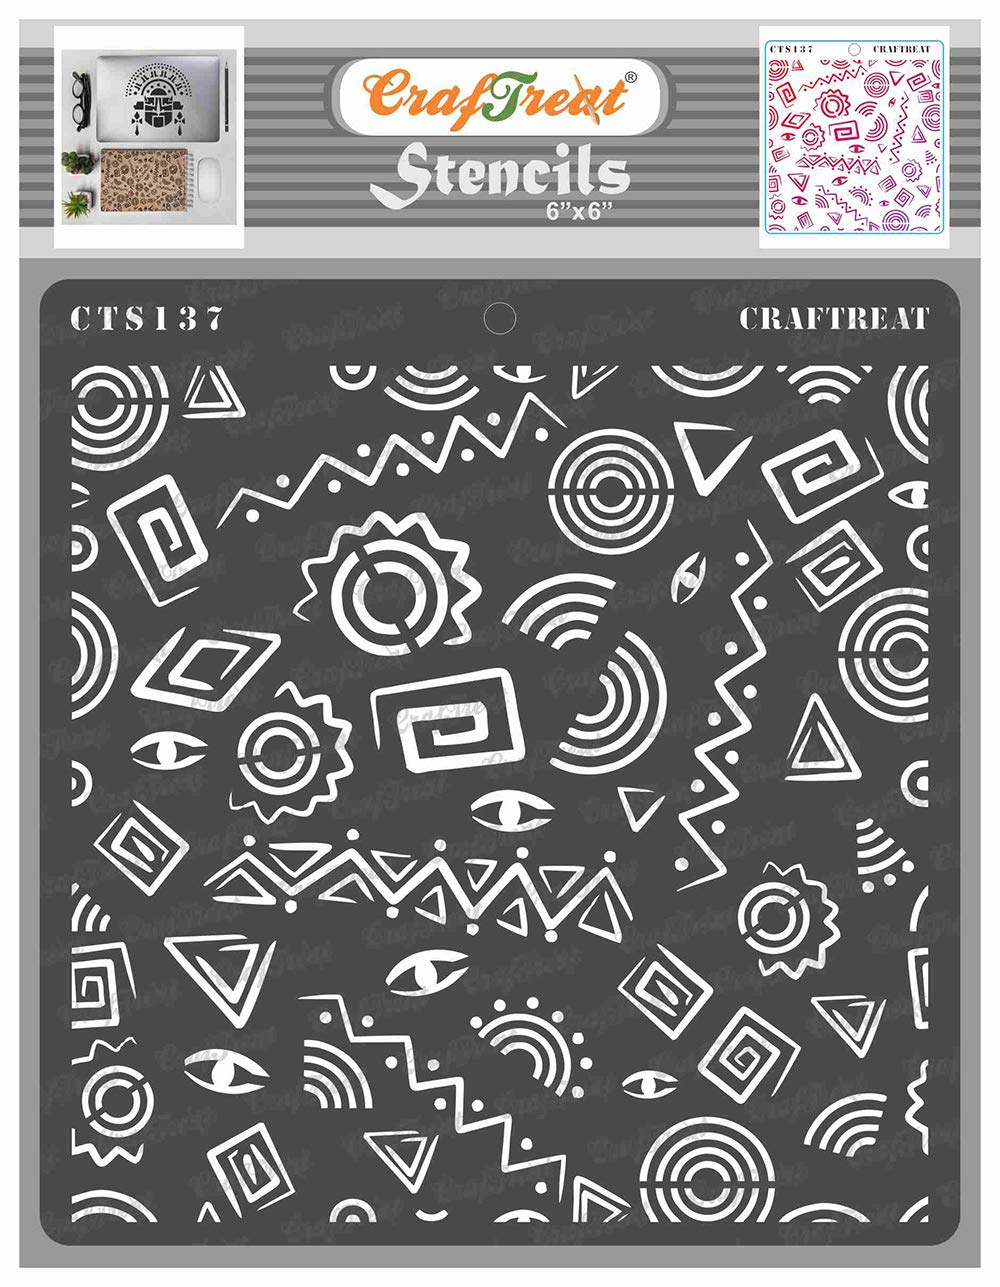 CrafTreat Tribal Stencils for Painting on Wood, Wall, Tile, Canvas, Paper, Fabric and Floor - Folk Art Background - 6x6 Inches - Reusable DIY Art and Craft Stencils - Folk Art Stencil